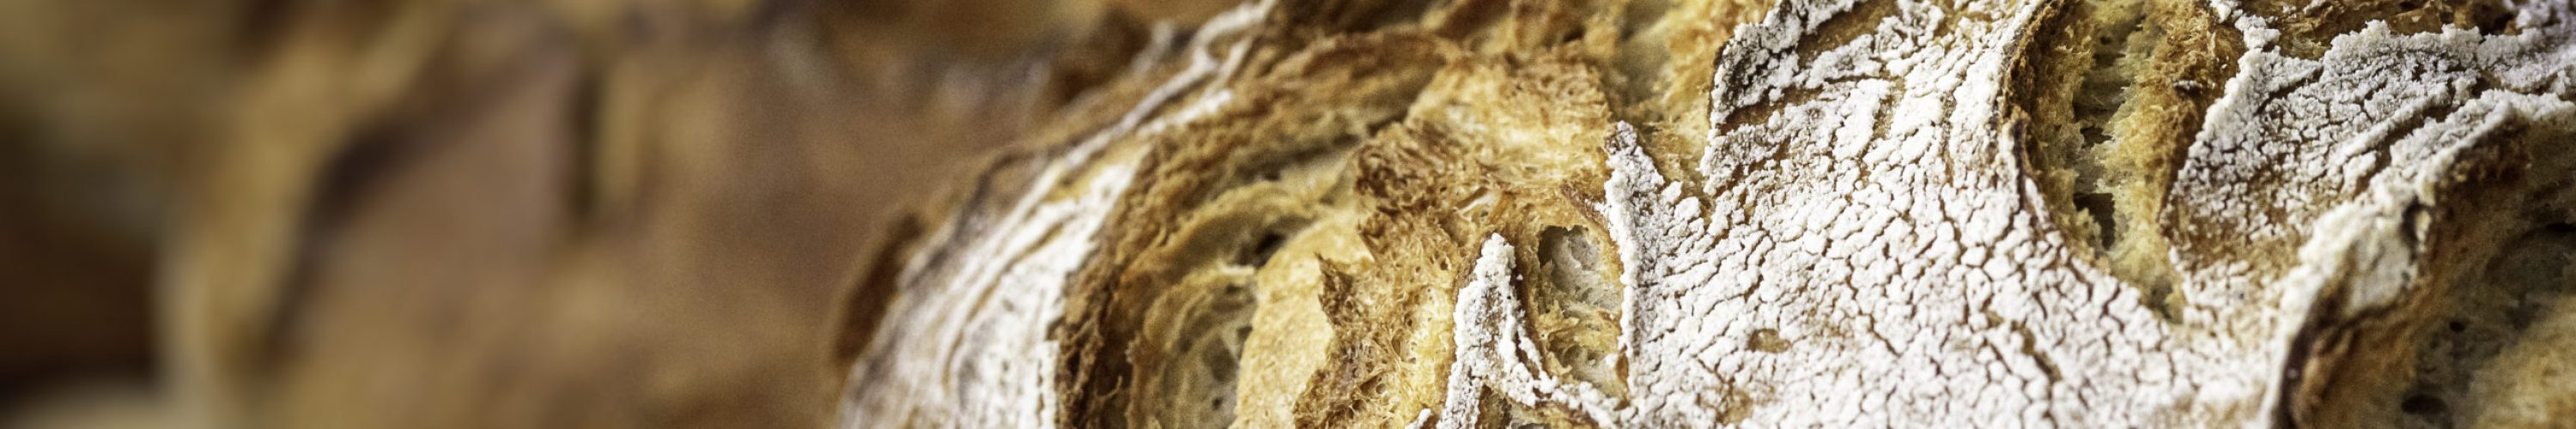 Round bread close-up. Freshly baked sourdough bread with a golden crust on bakery shelves. Baker shop context with delicious bread. Pastry items.